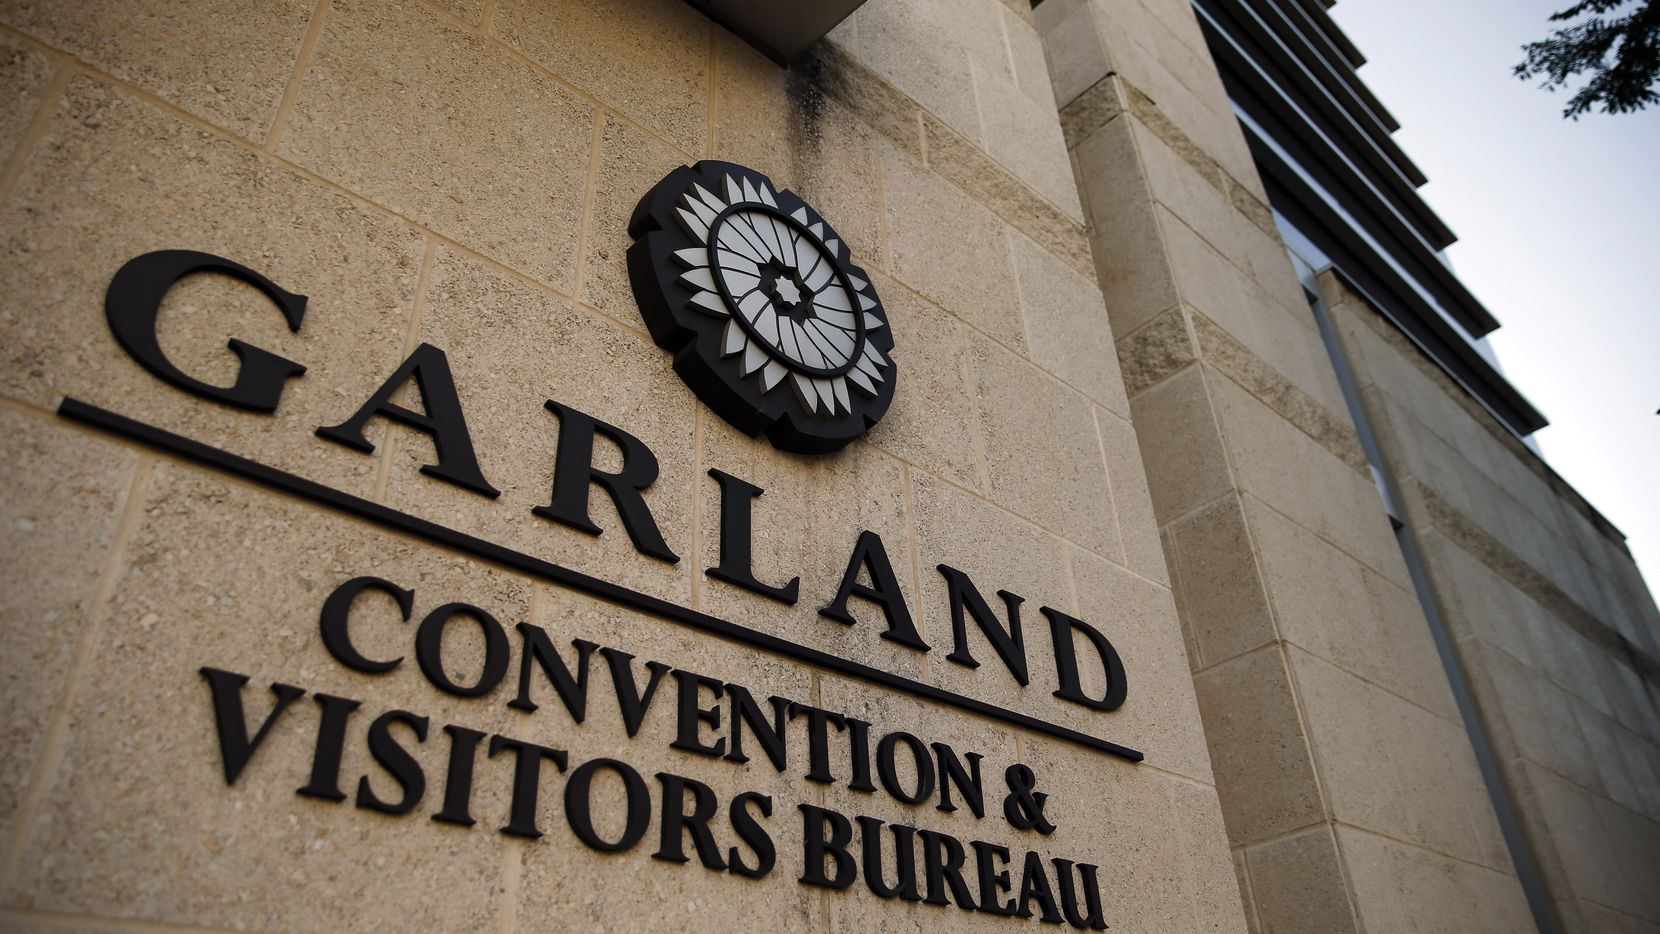 An exterior view of the Garland Convention and Visitors Bureau in downtown Garland, Texas, Friday, June 26, 2020.